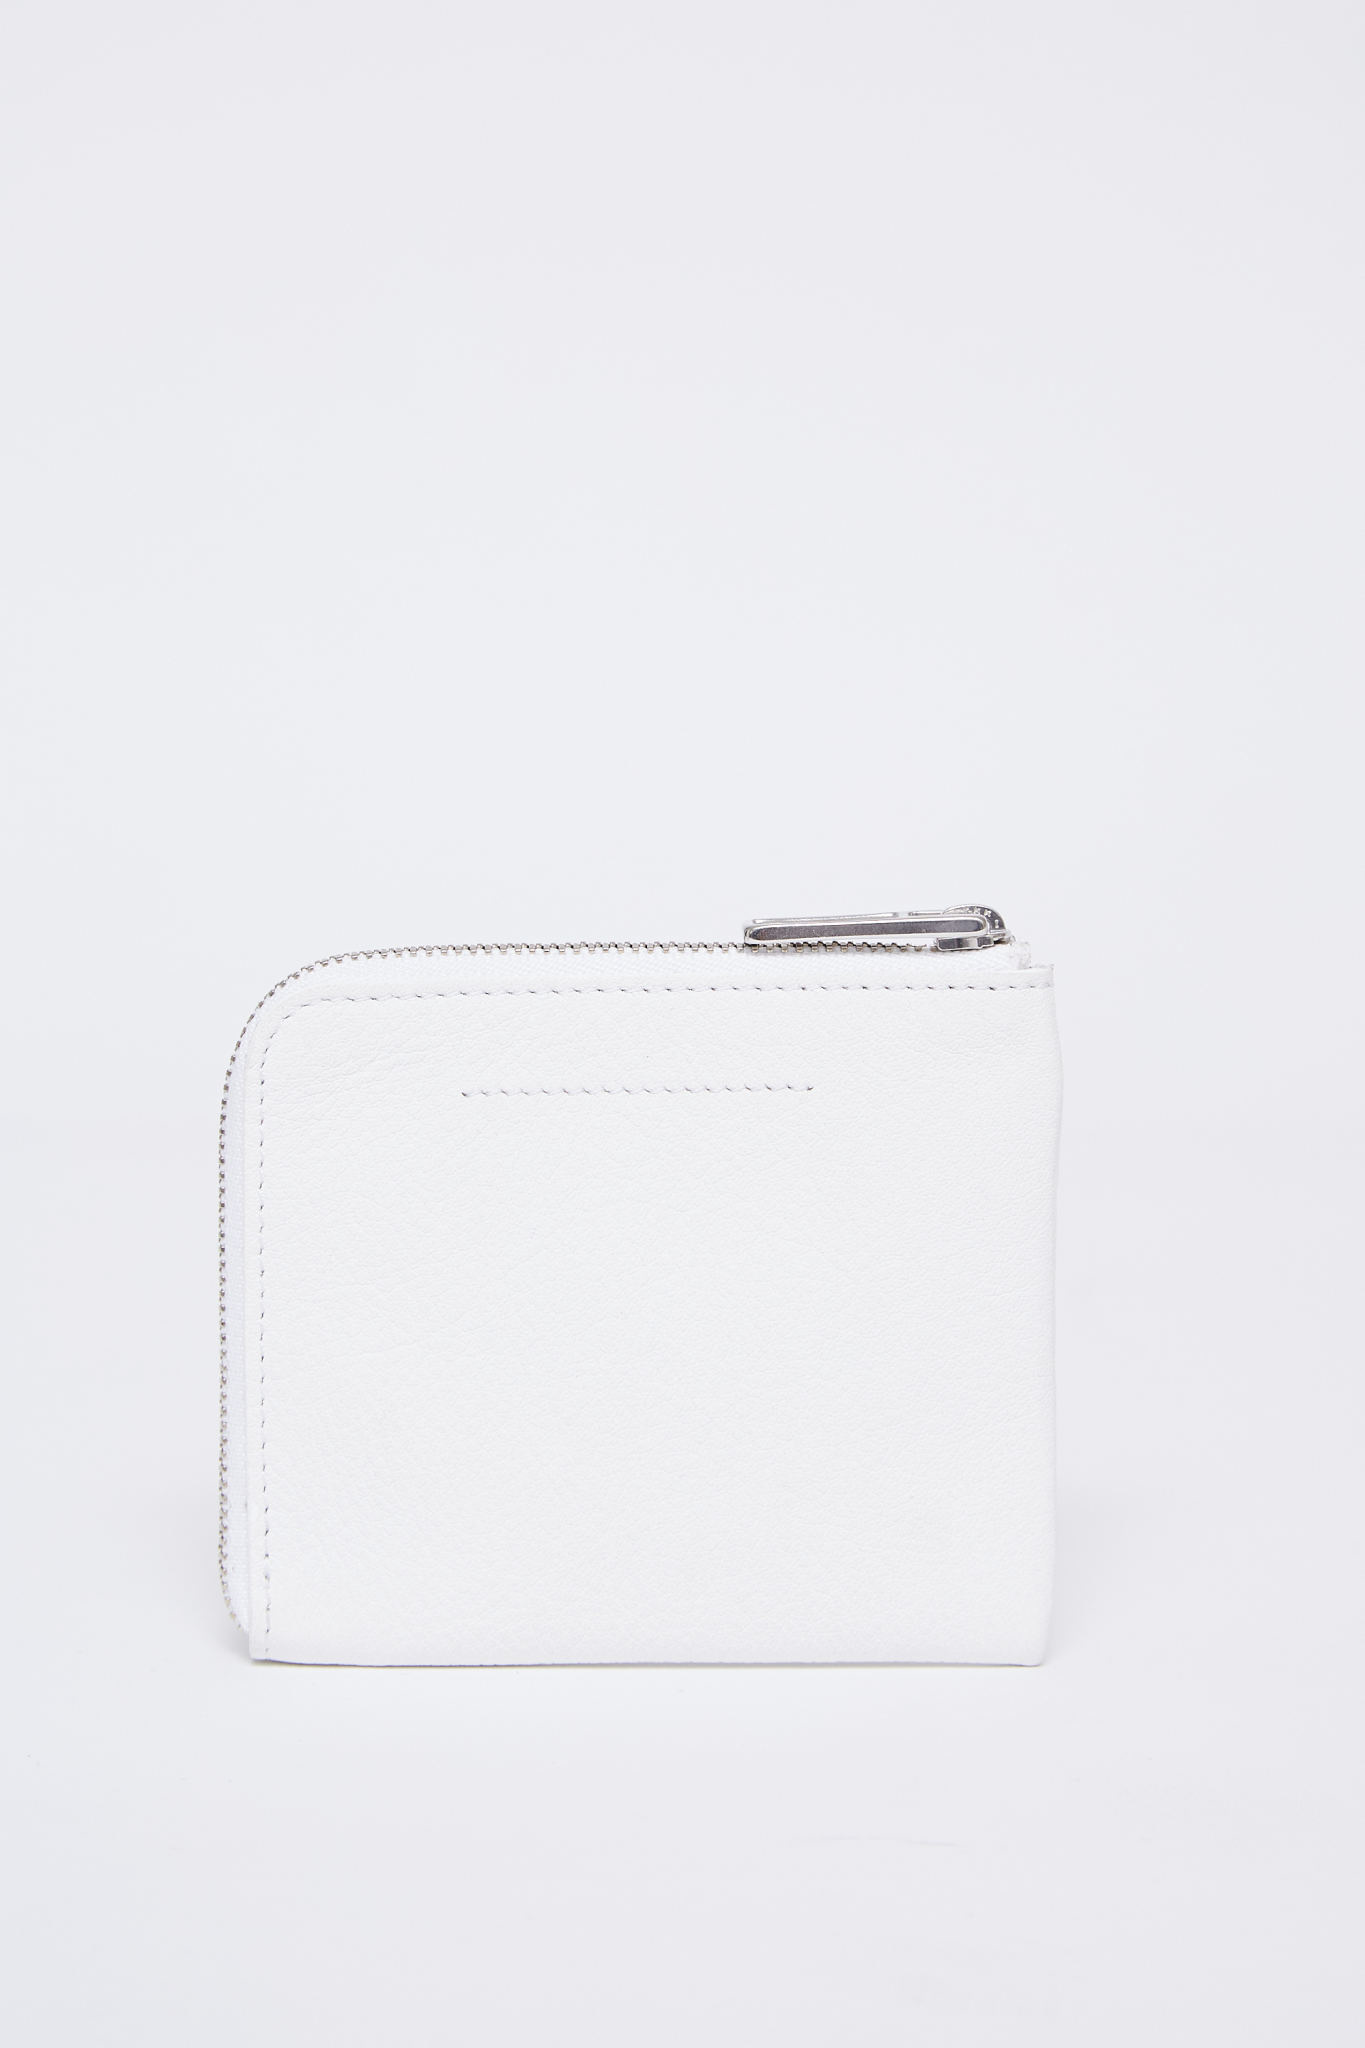 MM6 MAISON MARGIELA Vegan Leather 1/2 zip logo wallet in White